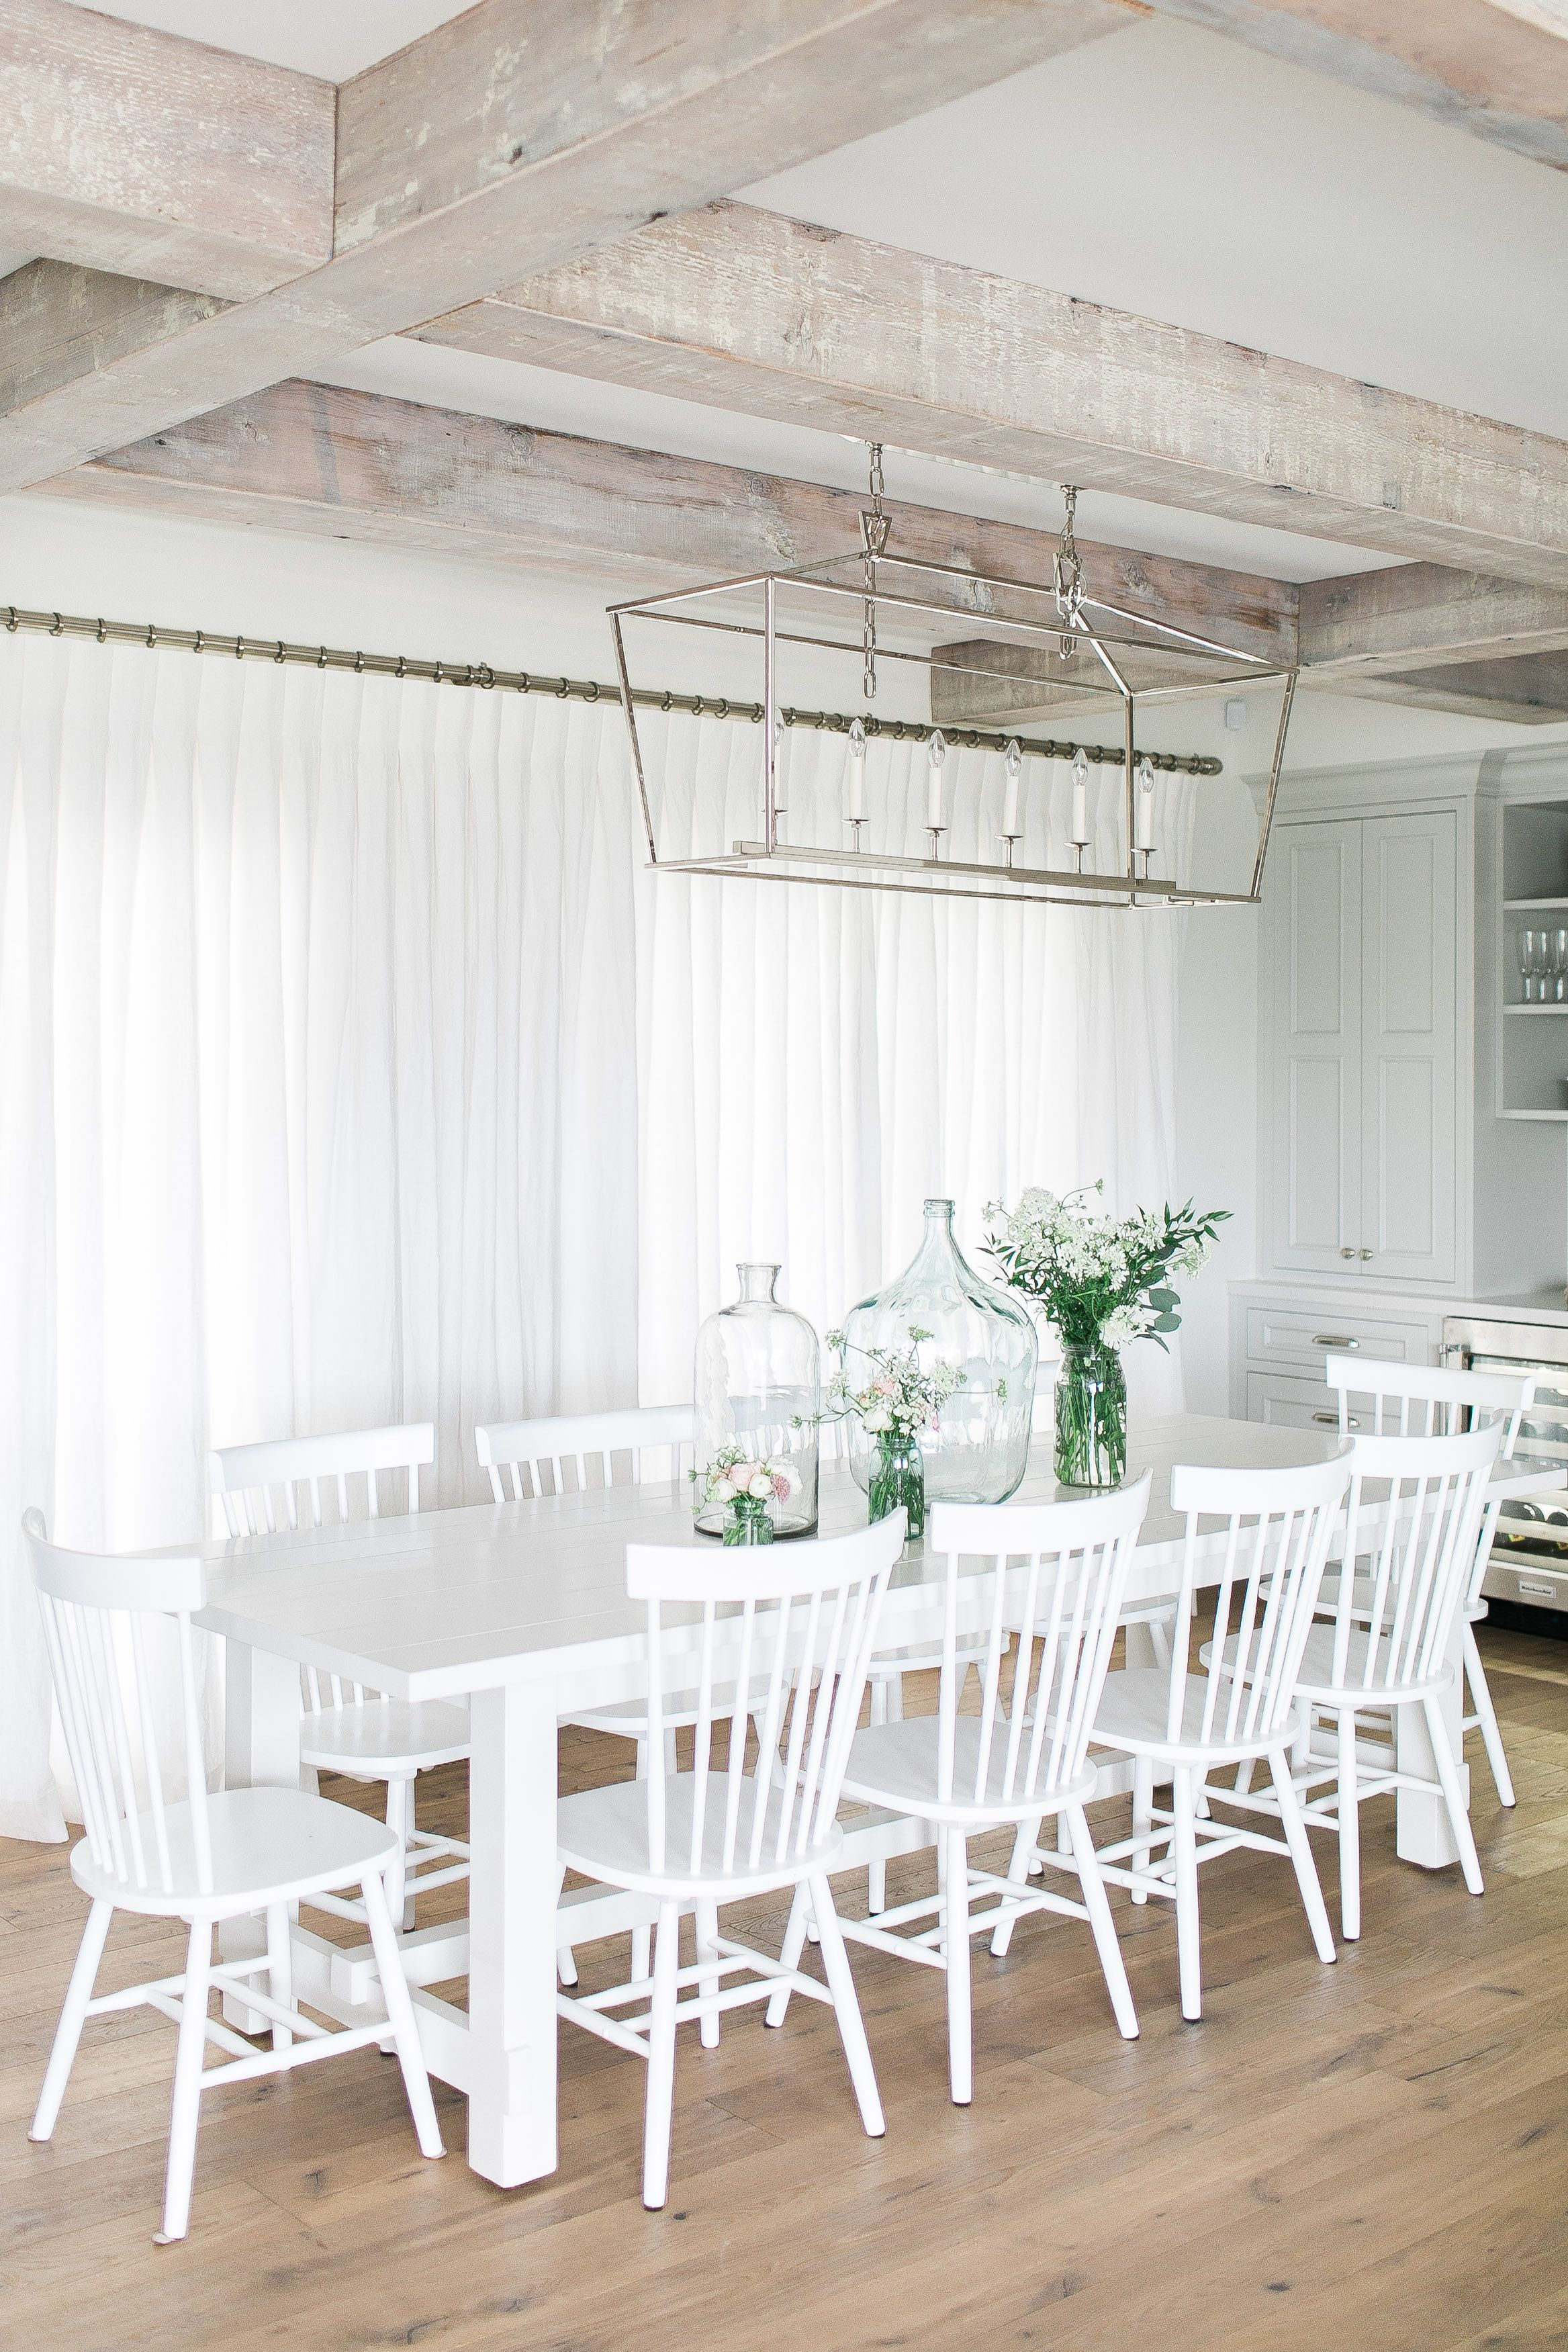 Our Q2 100% Linen drapery in colour Oyster add so much softness to Jillian Harris' eating area! Let us help you get perfect drapery for your home.... It's easy! Click to order online: https://qdesigncentre.com/shop/drapery/100-linen/